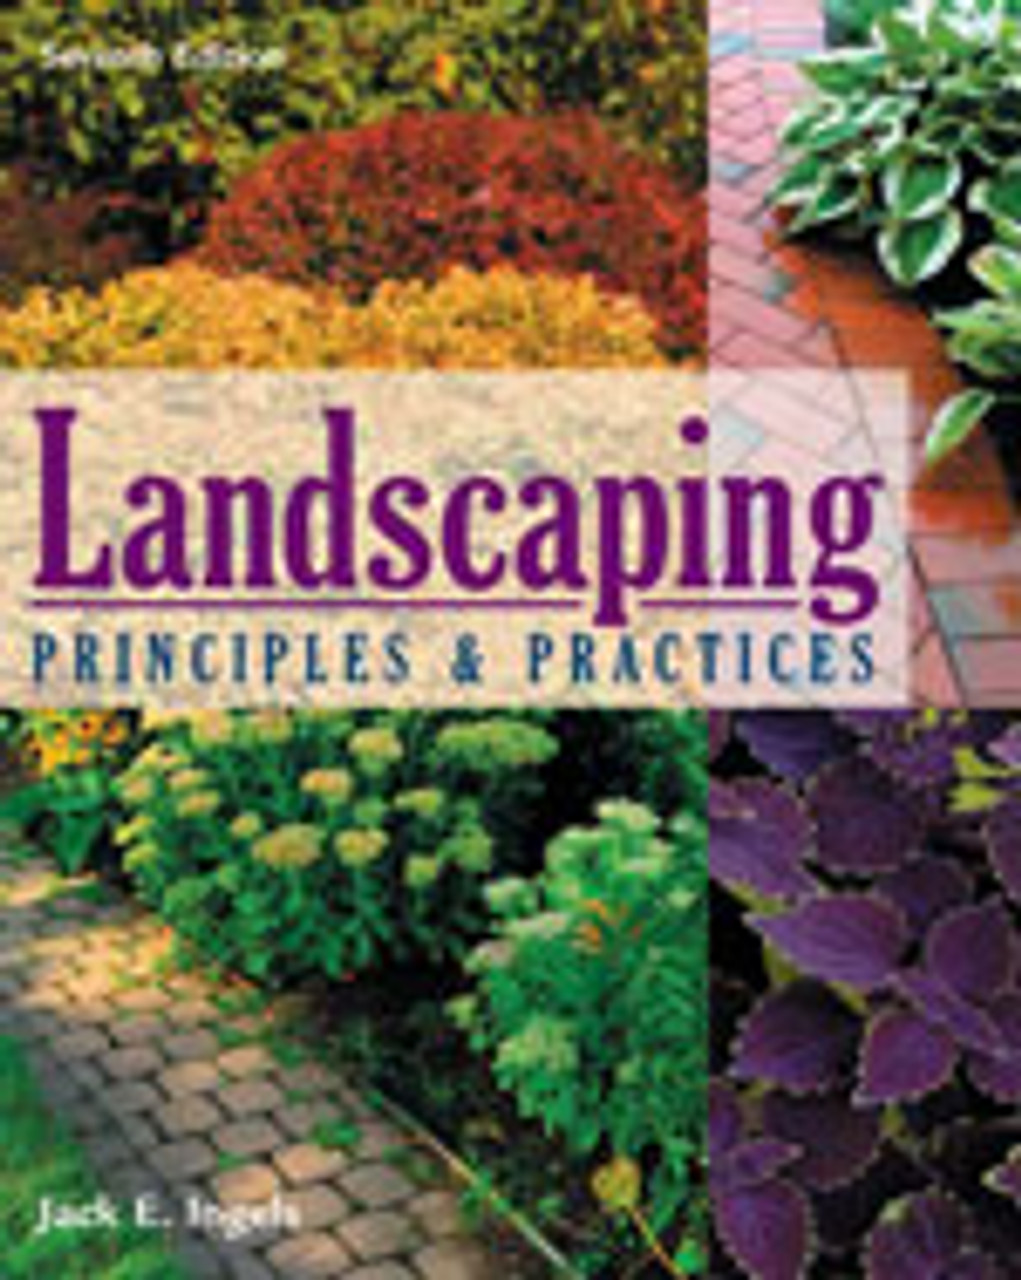 Landscaping Principles And Practices 7th Edition Psi Online Store